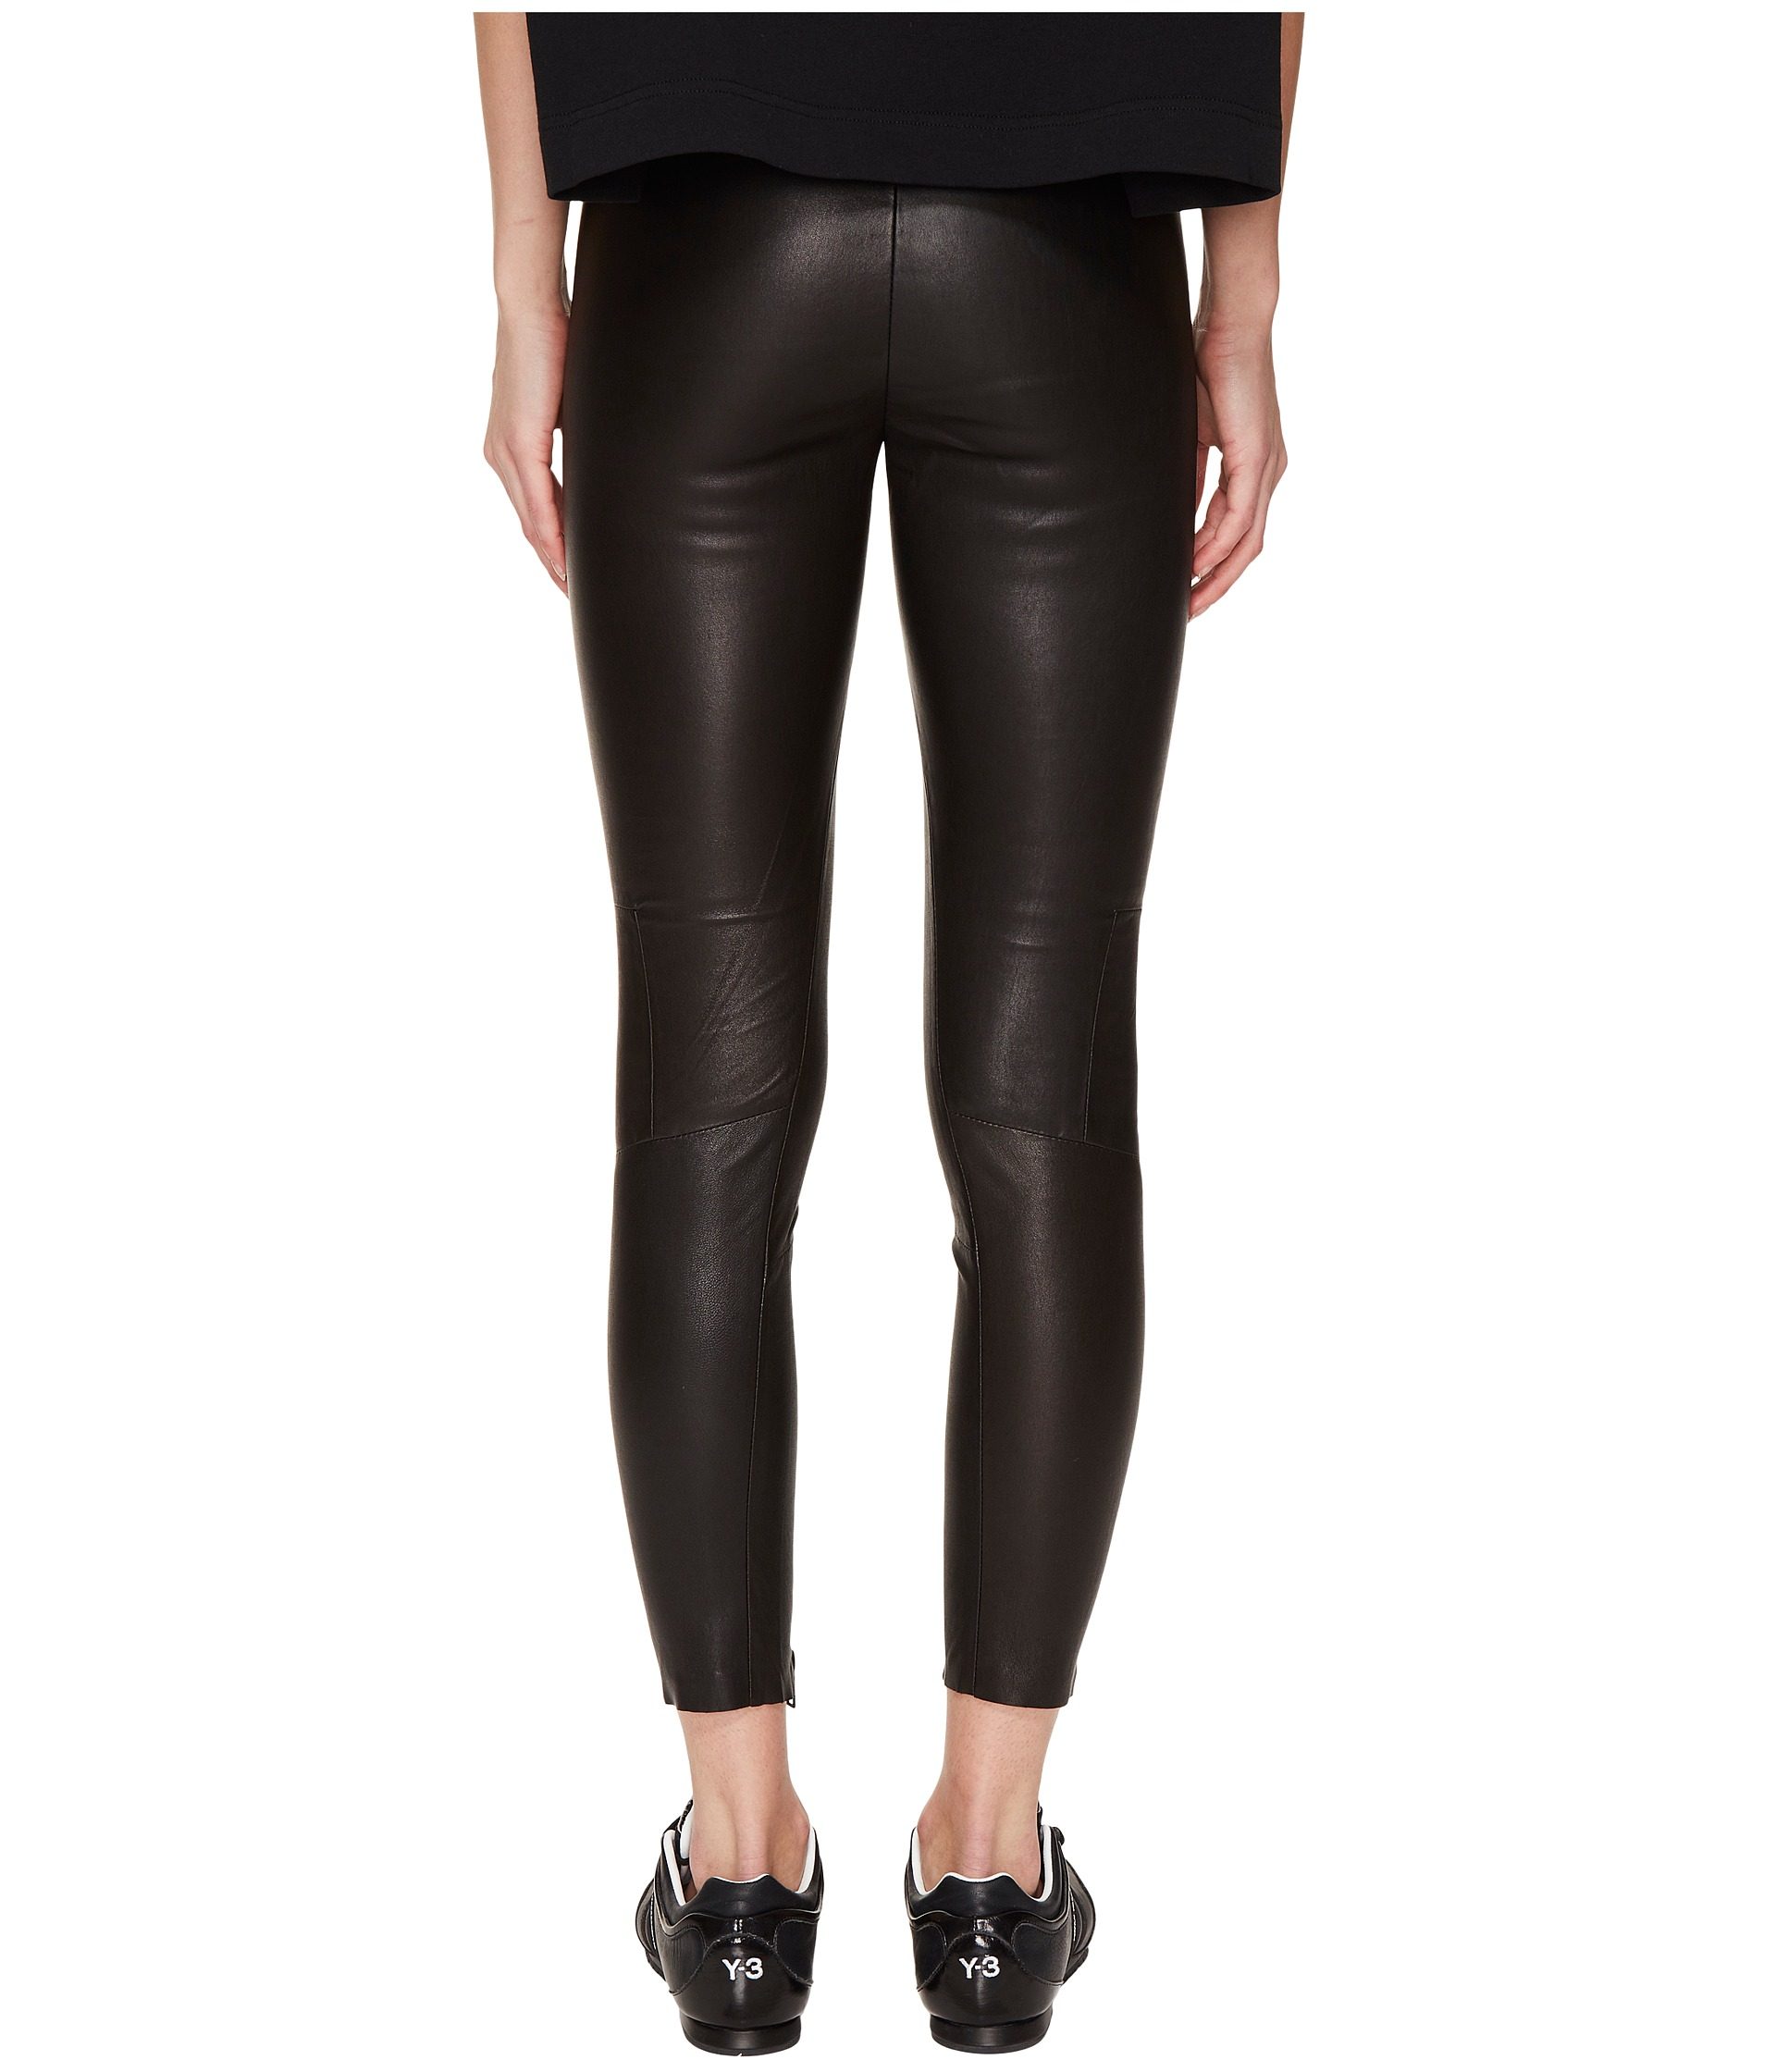 adidas Y-3 by Yohji Yamamoto Leather Leggings at Zappos.com